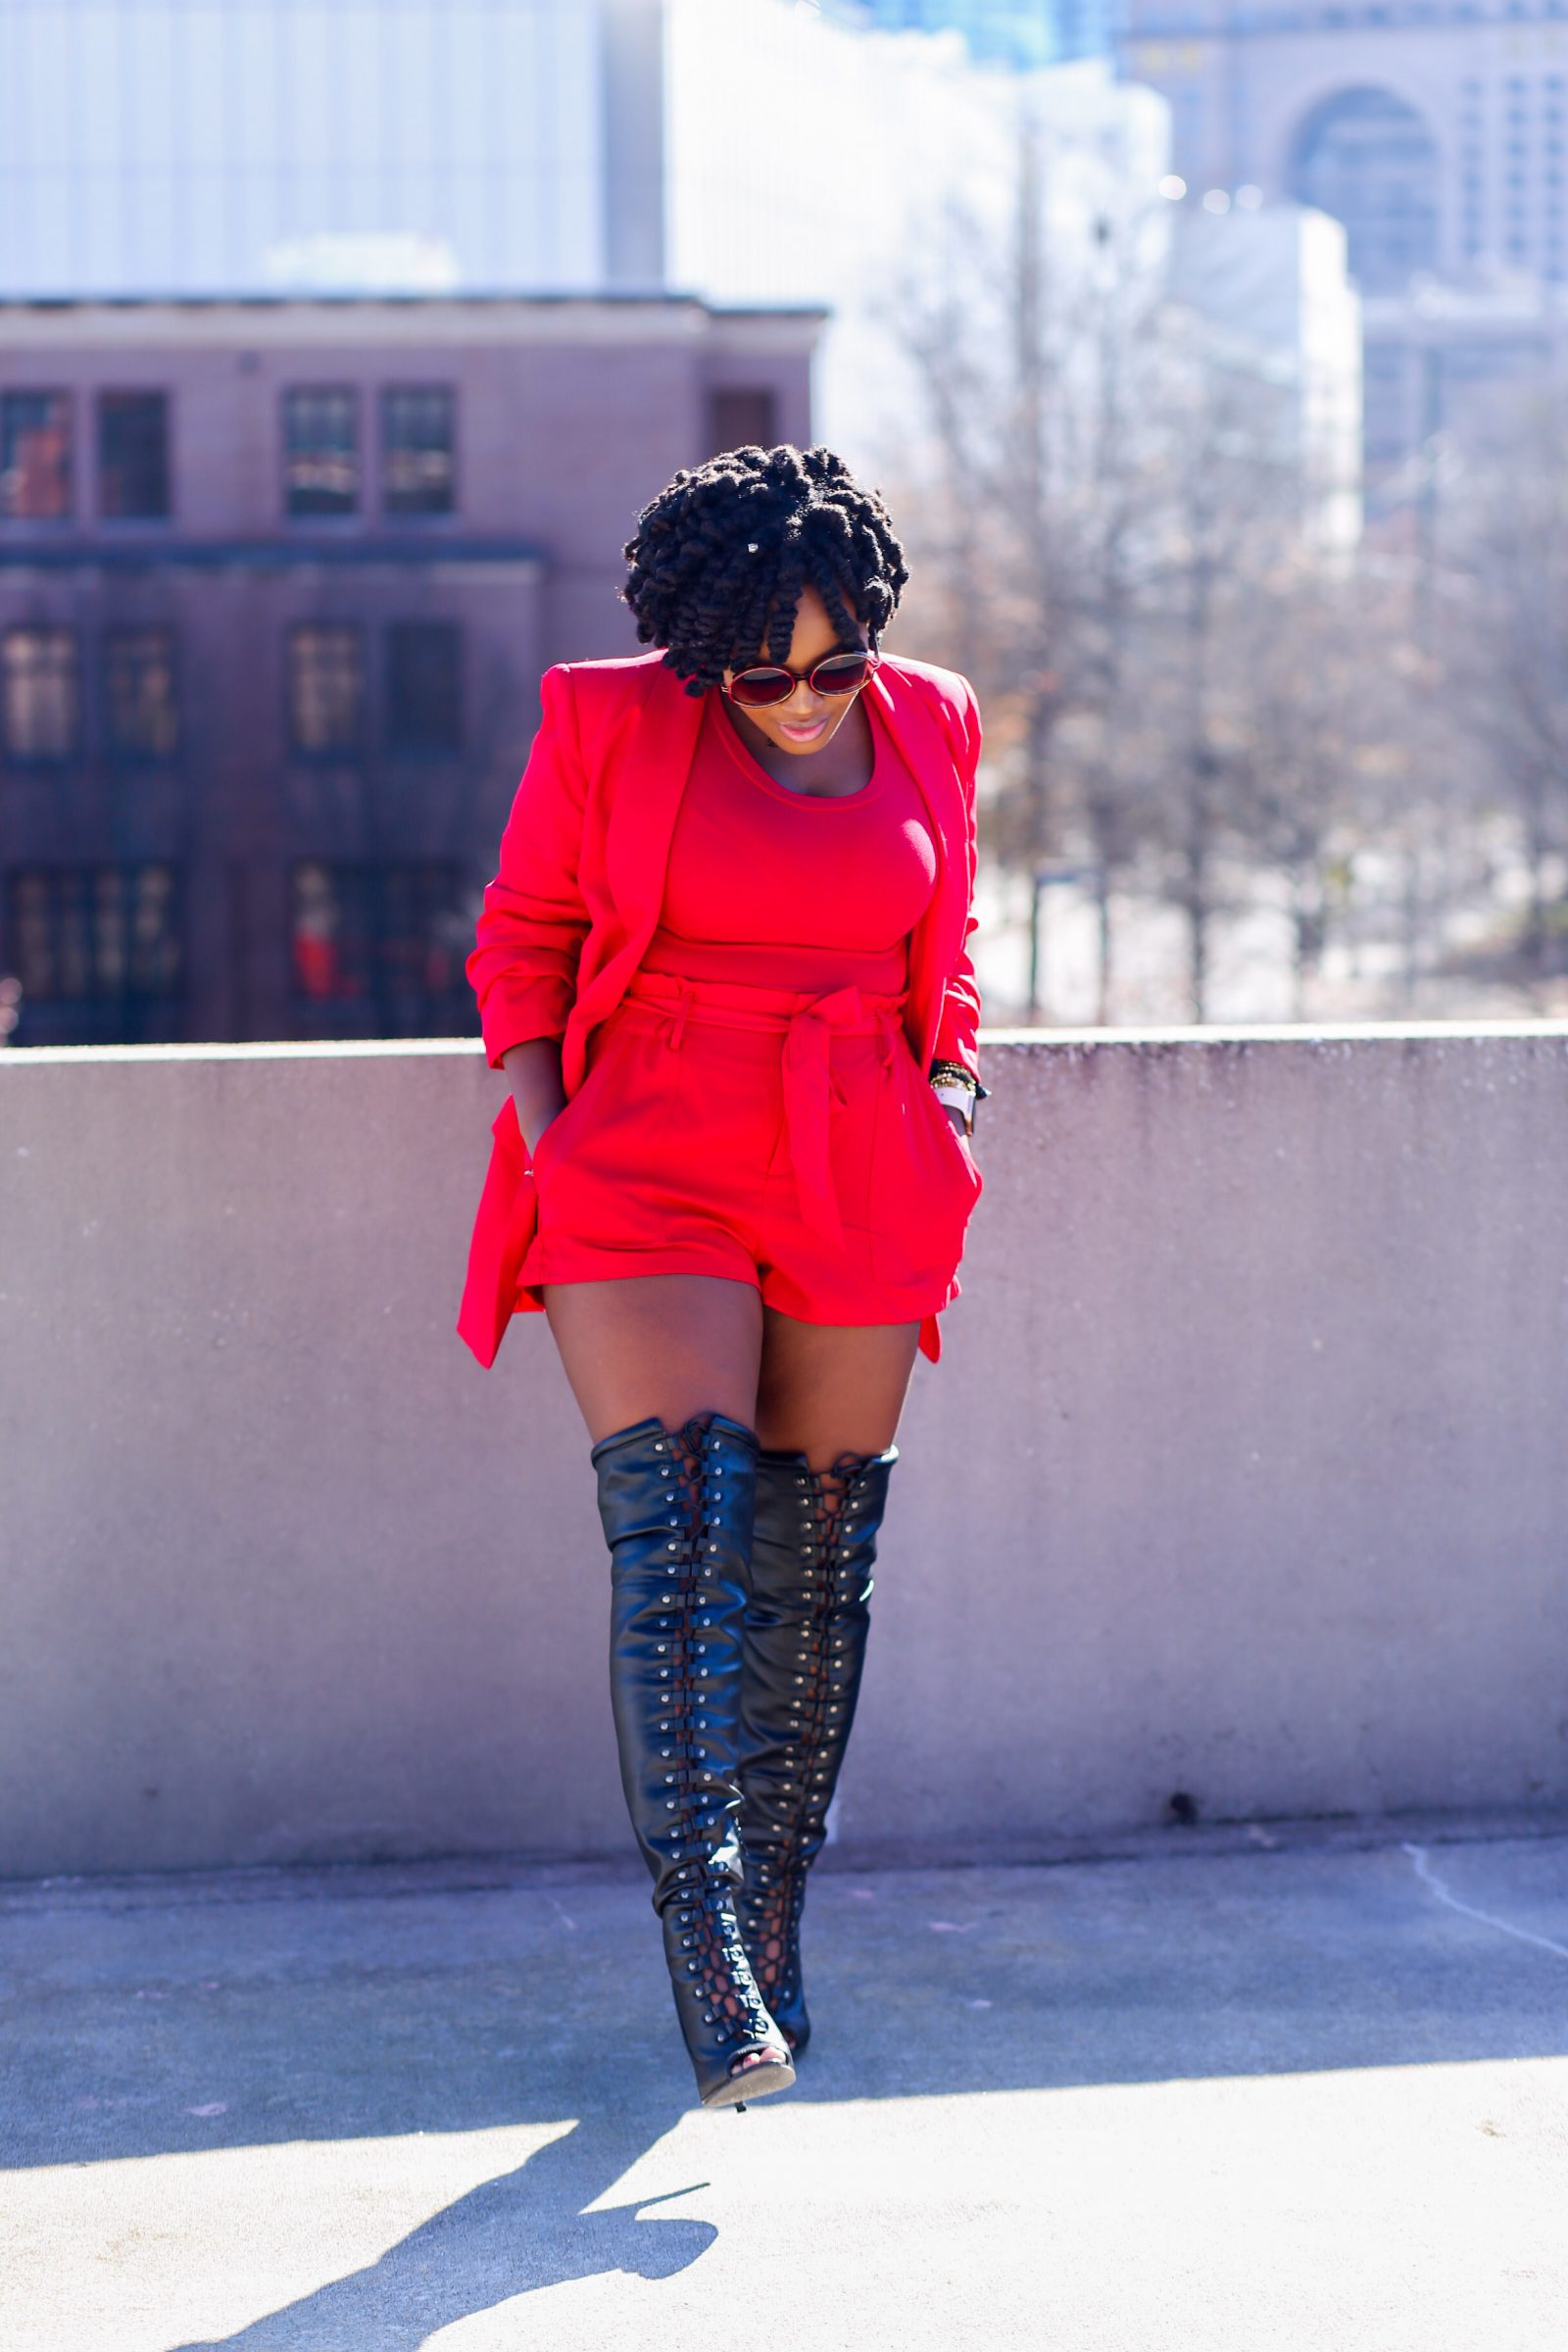 BLOG ANNIVERSARY WEEK LOOK 4: RED SUIT